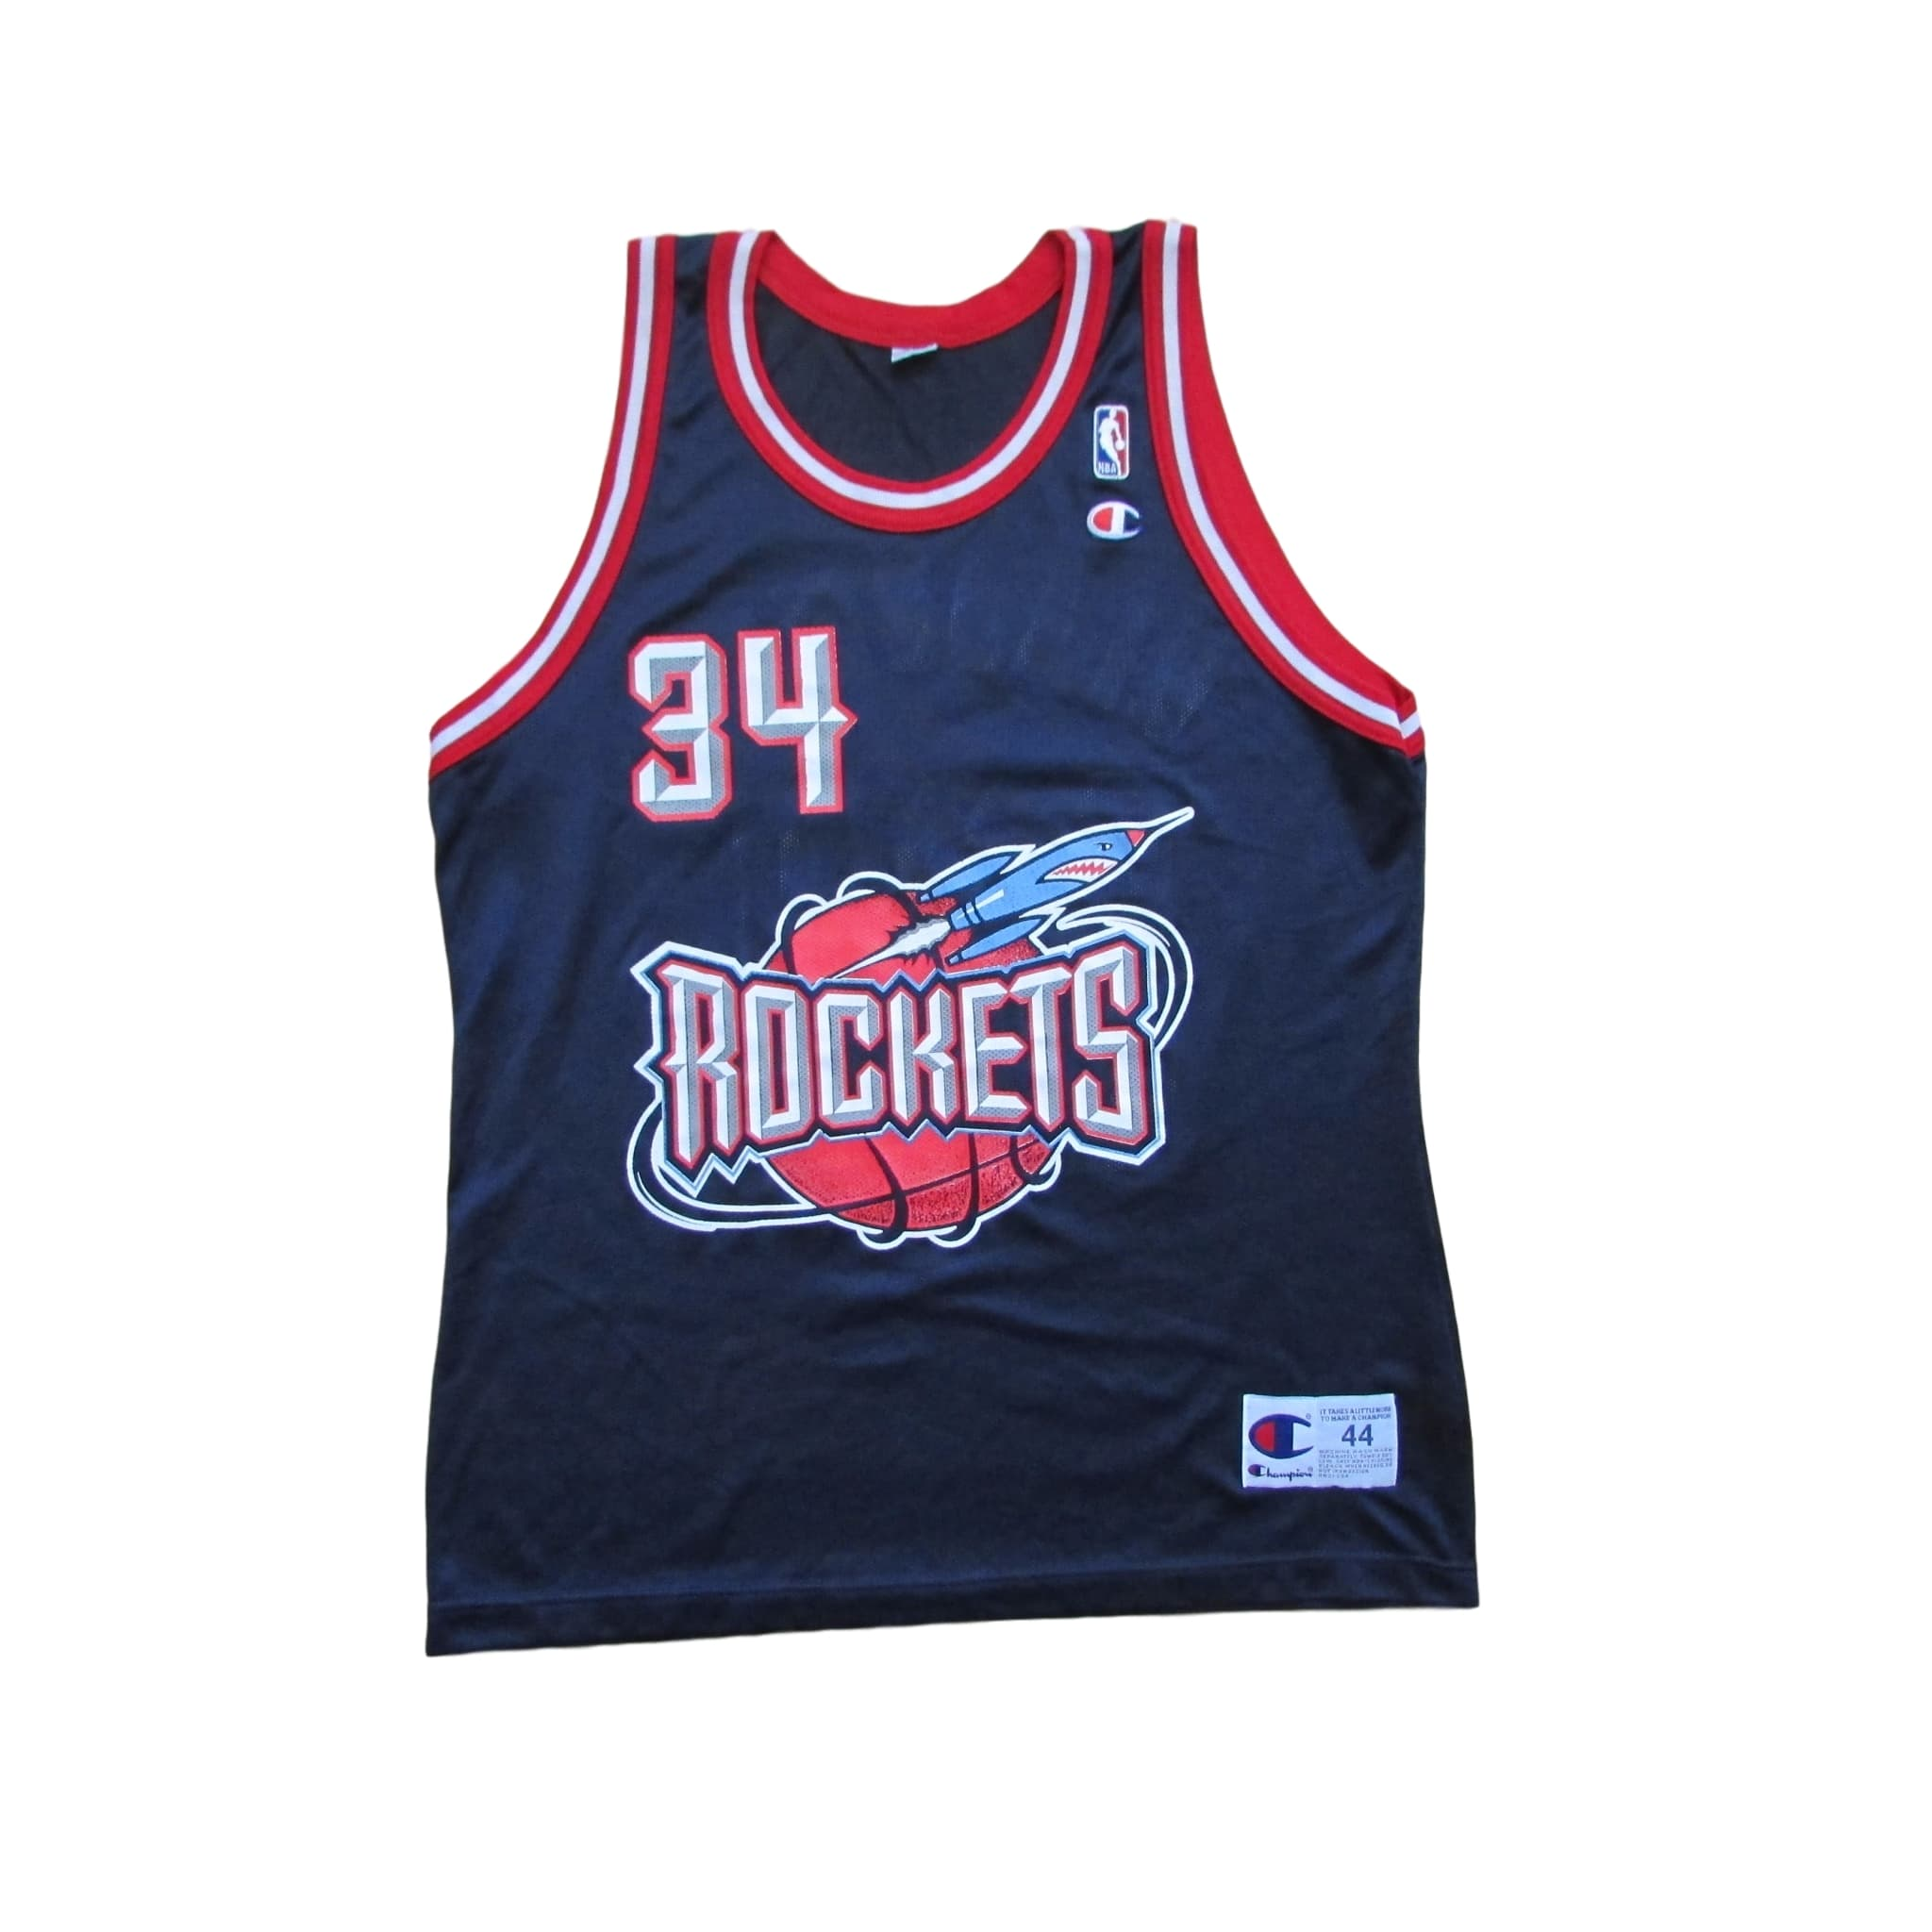 new arrival c479b 35399 Houston Rockets Hakeem Olajuwon Basketball Jersey 1994 Champion Sz 44